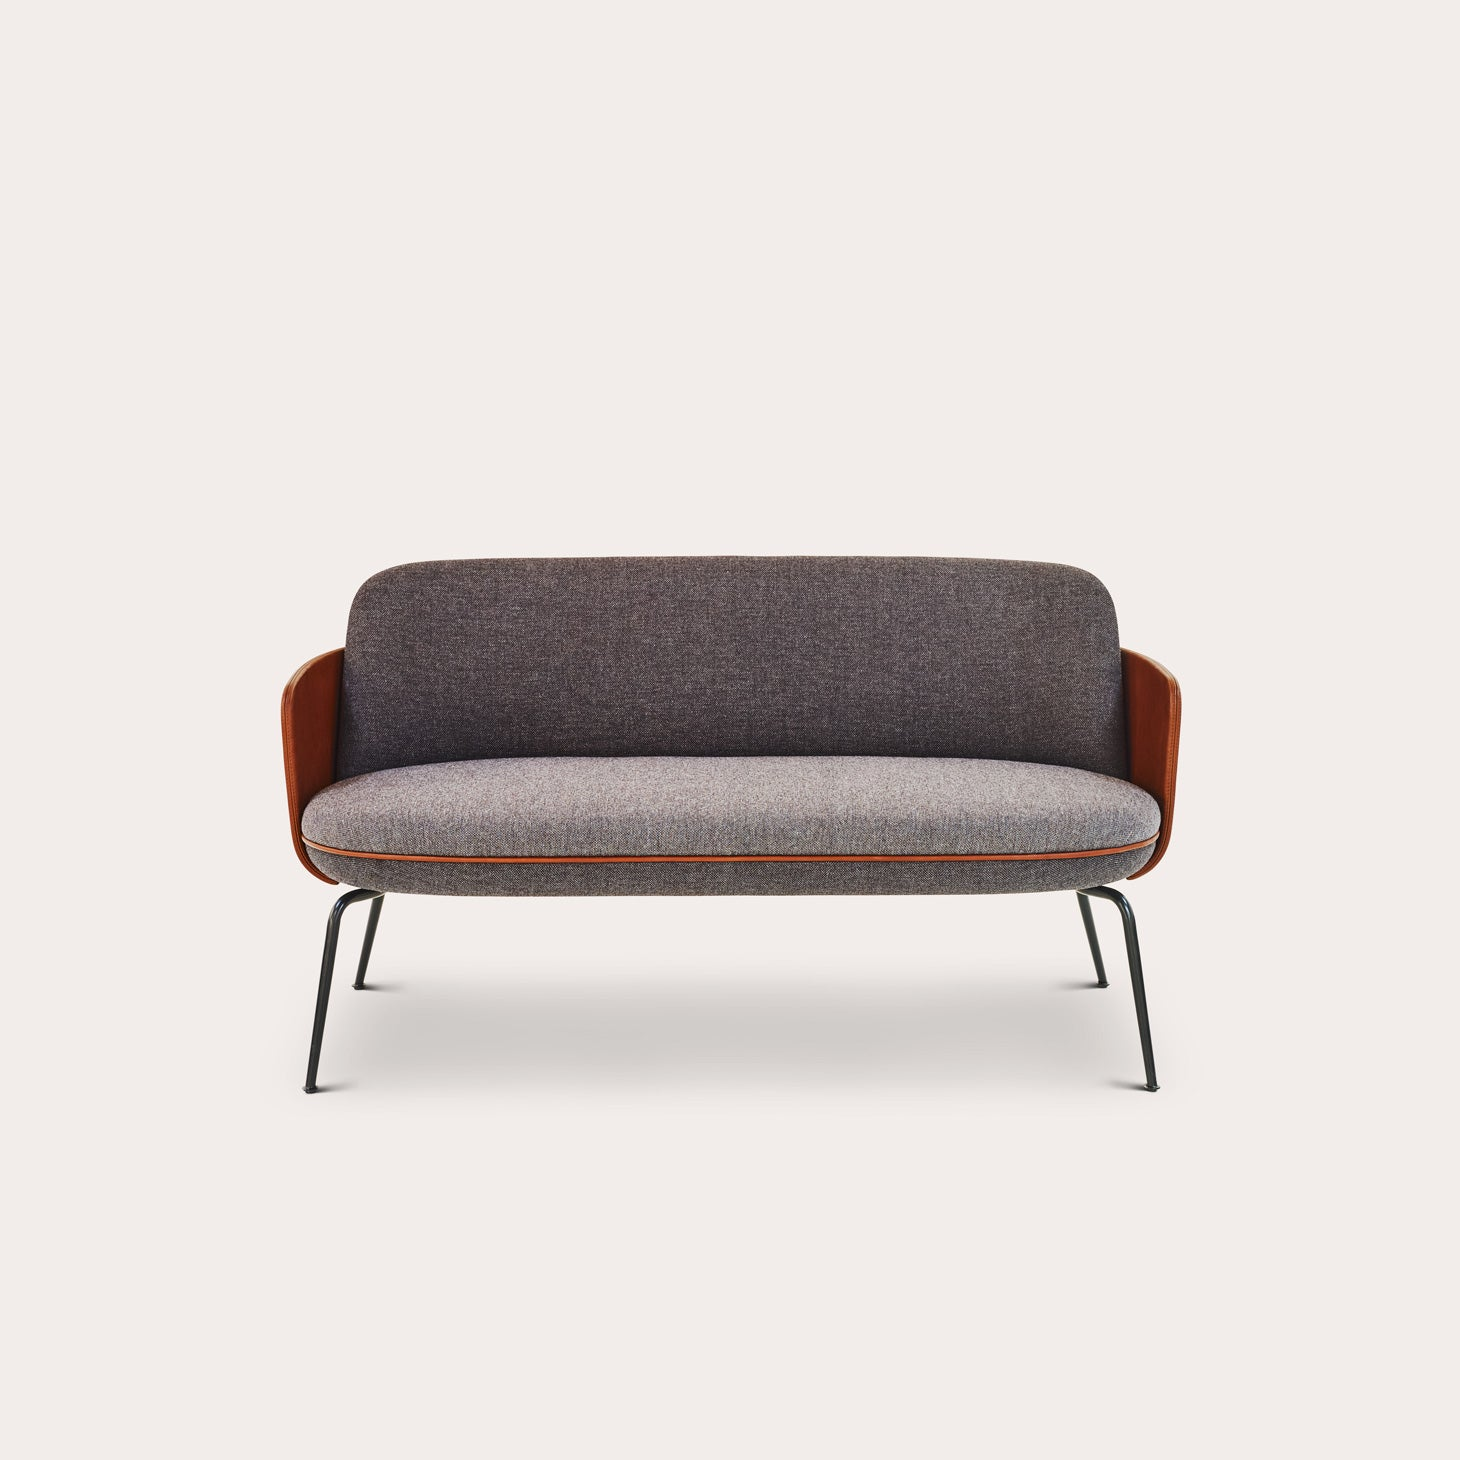 Merwyn Lounge Bench with Arms Seating Sebastian Herkner Designer Furniture Sku: 758-240-10227